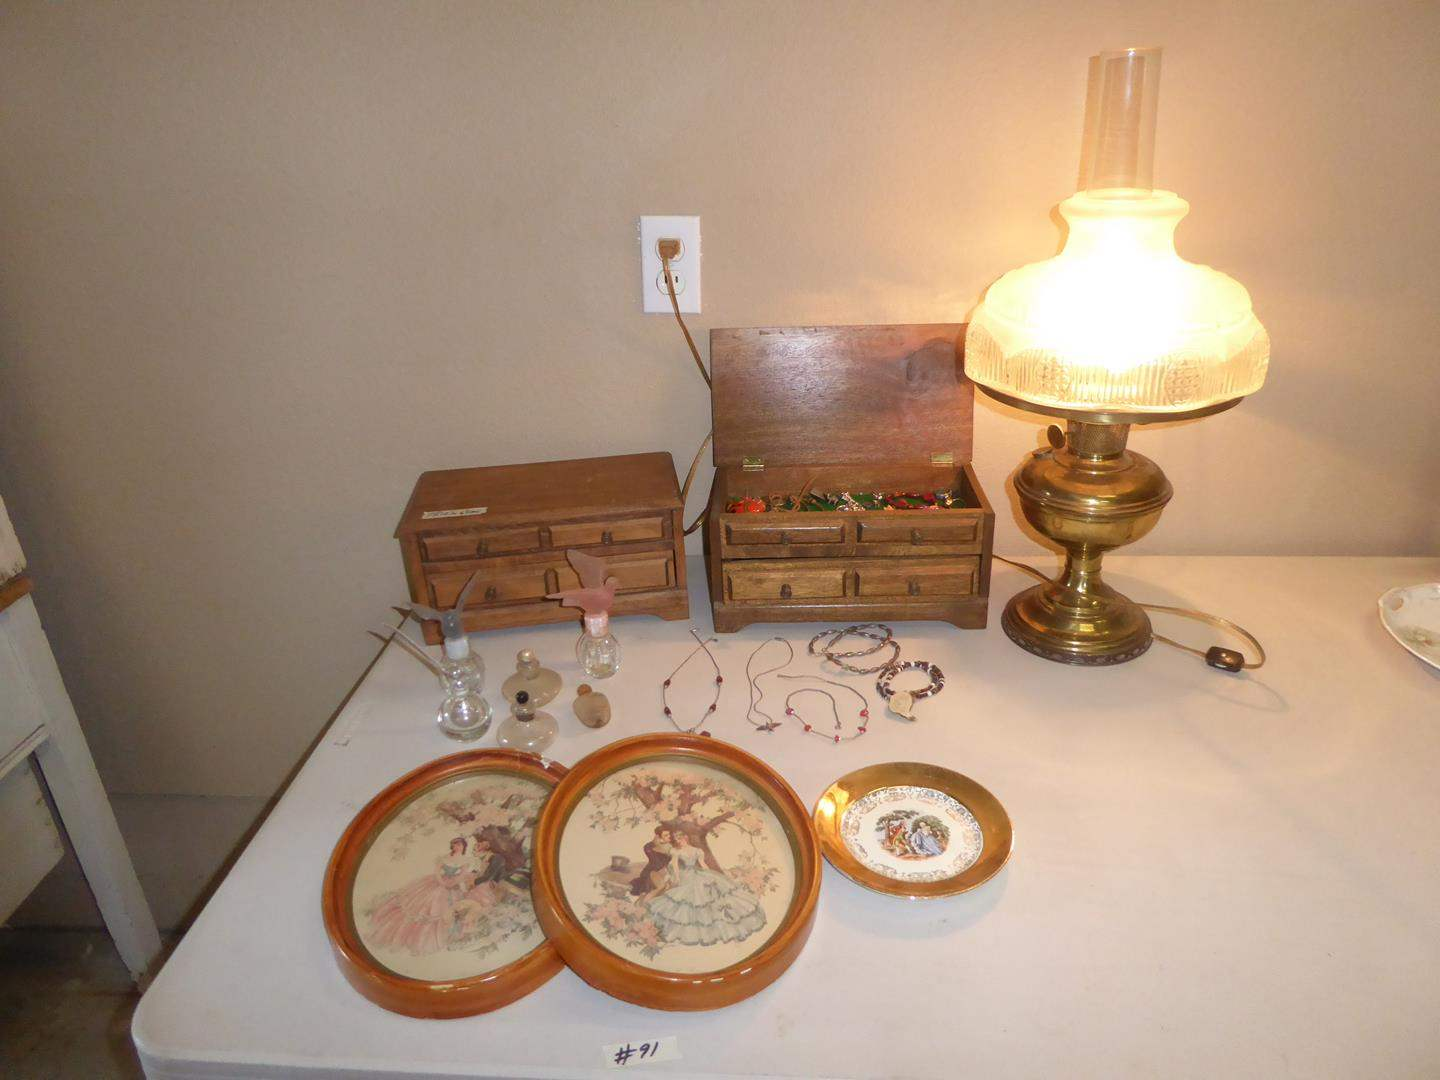 Lot # 91 - Vintage Prints, Electrified Oil Lamp, Perfume Bottles, Costume Jewelry & Jewelry Boxes (main image)